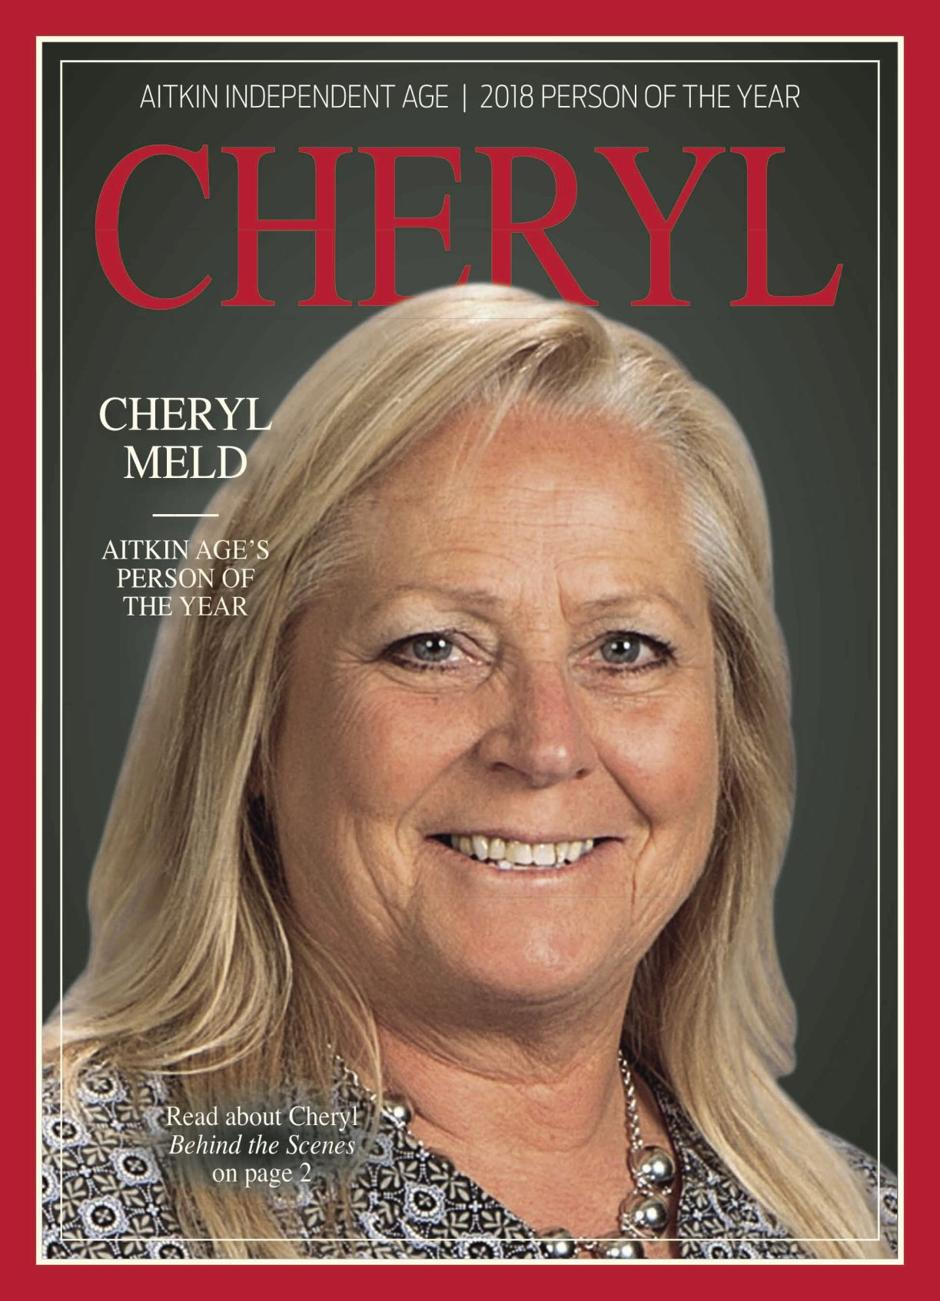 Cheryl Meld was selected the 2018 person of the year.""